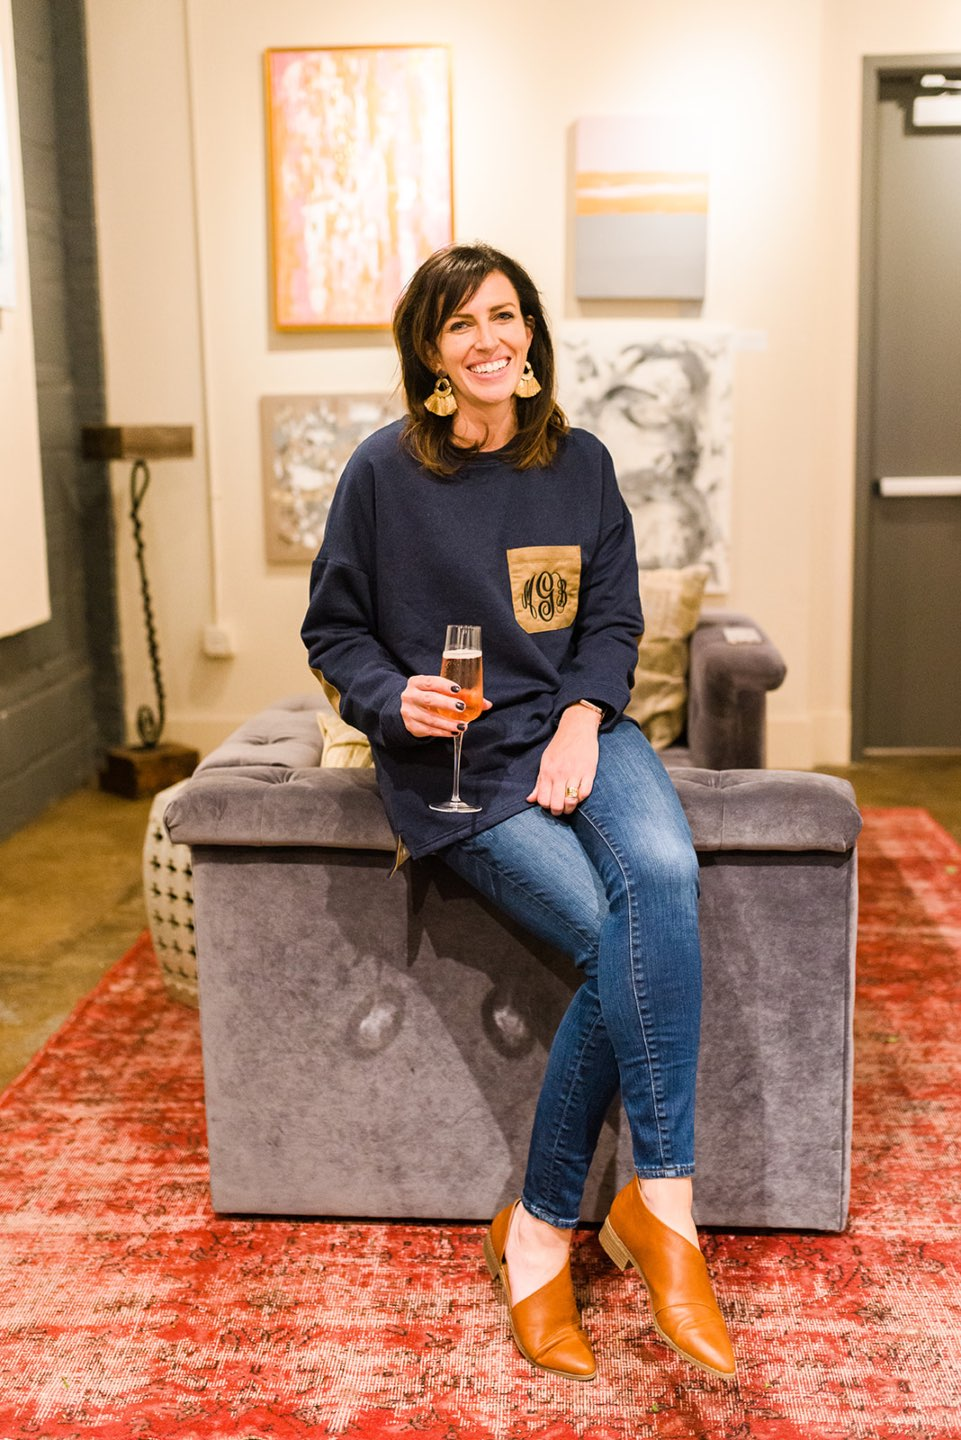 The Monogrammed Sweatshirt Trend with Marley Lilly featured by top US life and style blog, I'm Fixin' To: image of a woman wearing a Marley Lilly monogrammed sweatshirt, Madewell skinny jeans, Target flats and Etsy earrings